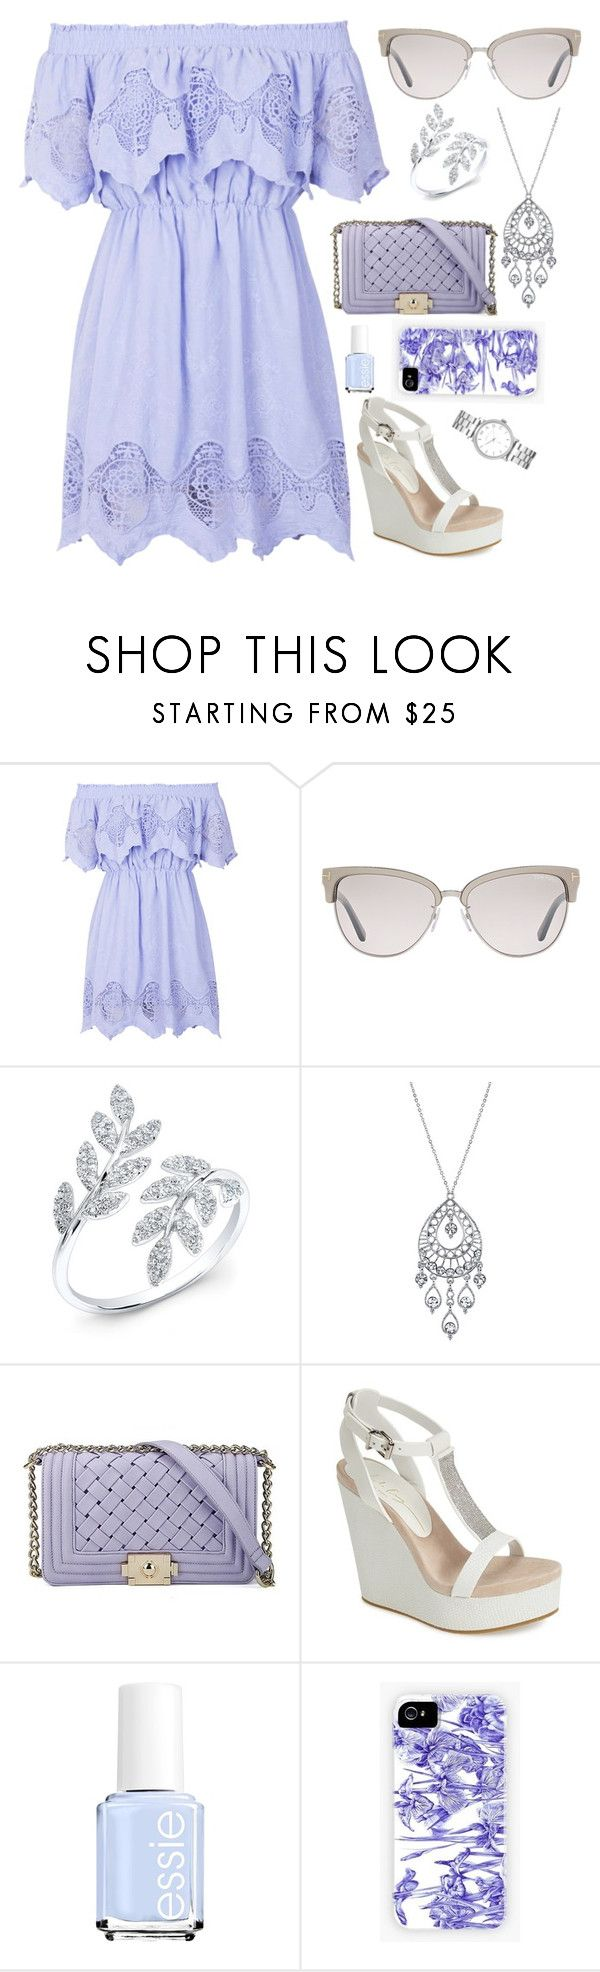 """Lilac Dreams"" by beth-johnson ❤ liked on Polyvore featuring Topshop, Tom Ford, 1928, Lola Cruz, Essie and Marc by Marc Jacobs"